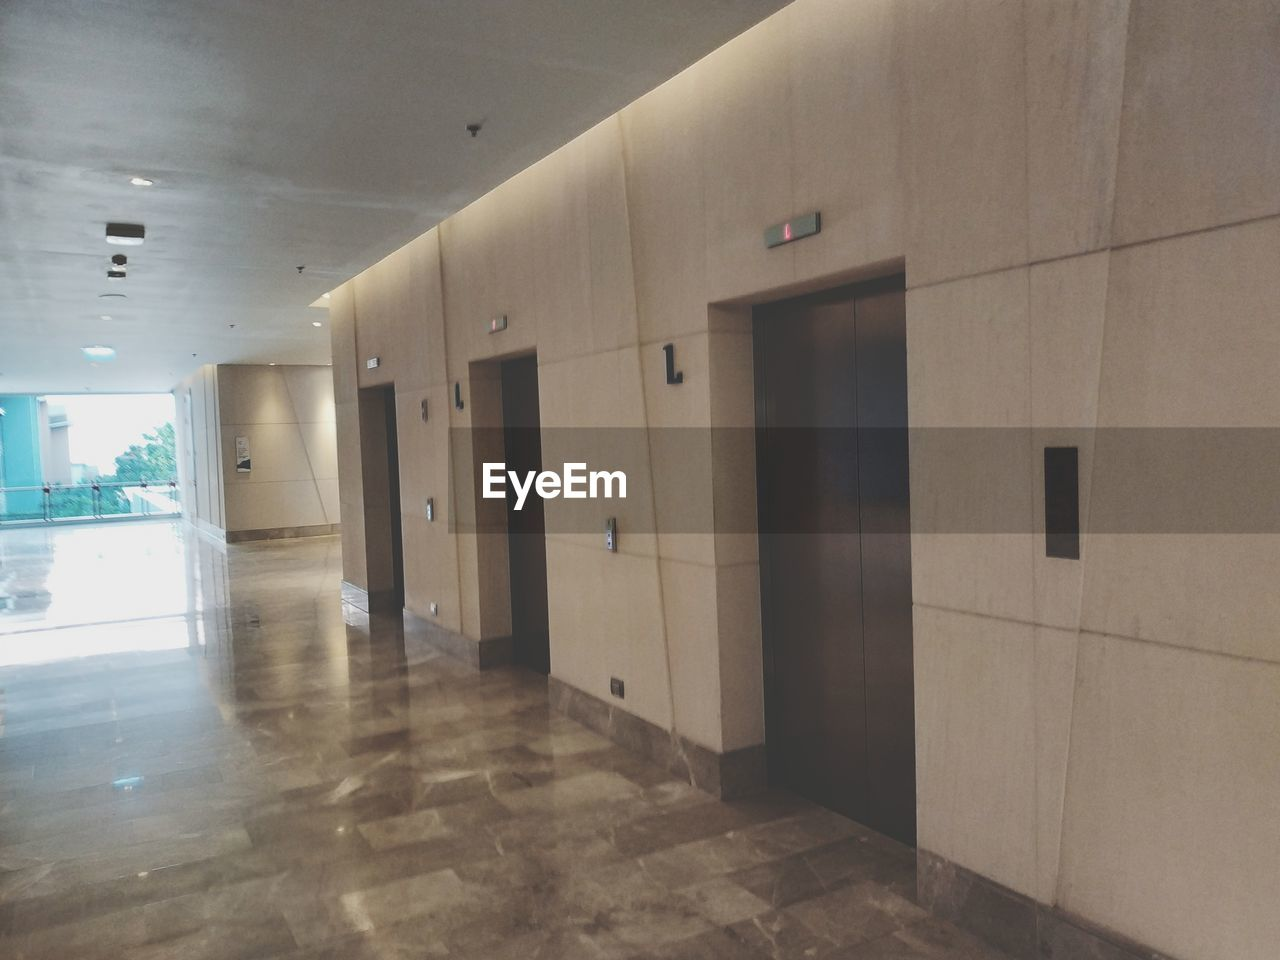 flooring, indoors, architecture, built structure, building, ceiling, arcade, tile, corridor, wall - building feature, no people, empty, entrance, door, absence, illuminated, tiled floor, wall, day, window, clean